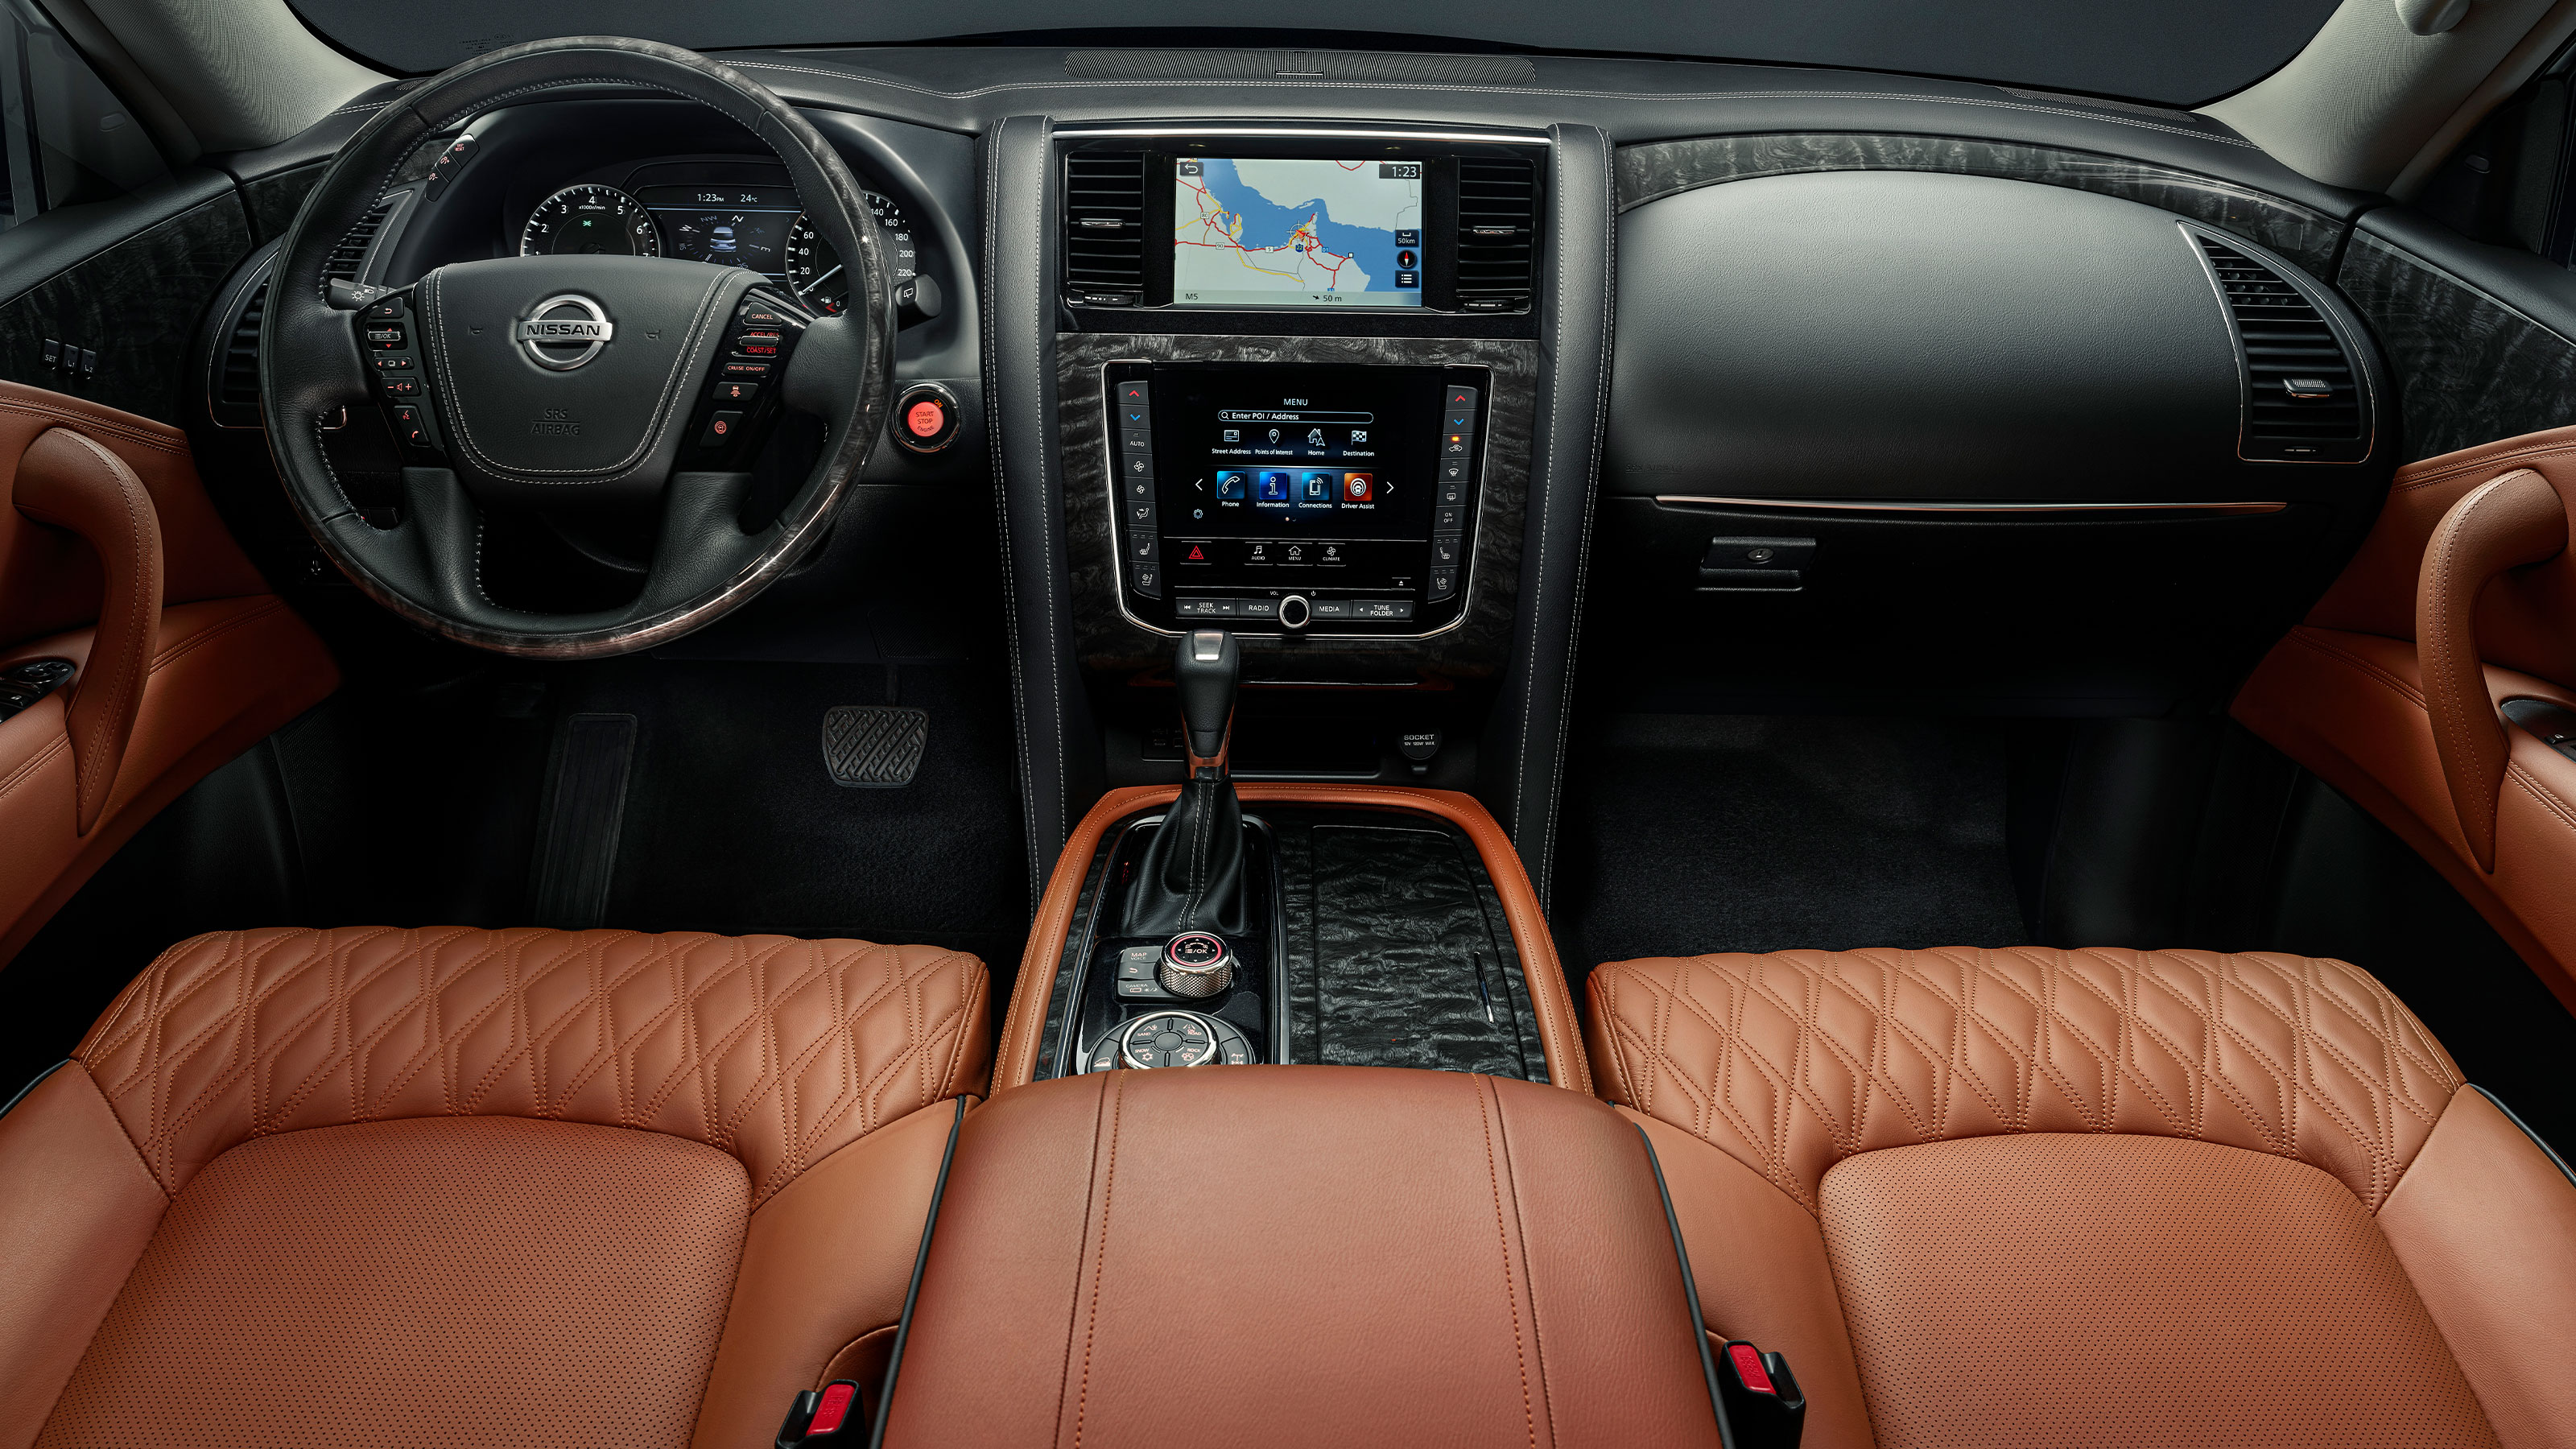 2020 NISSAN PATROL interior cockpit and screens